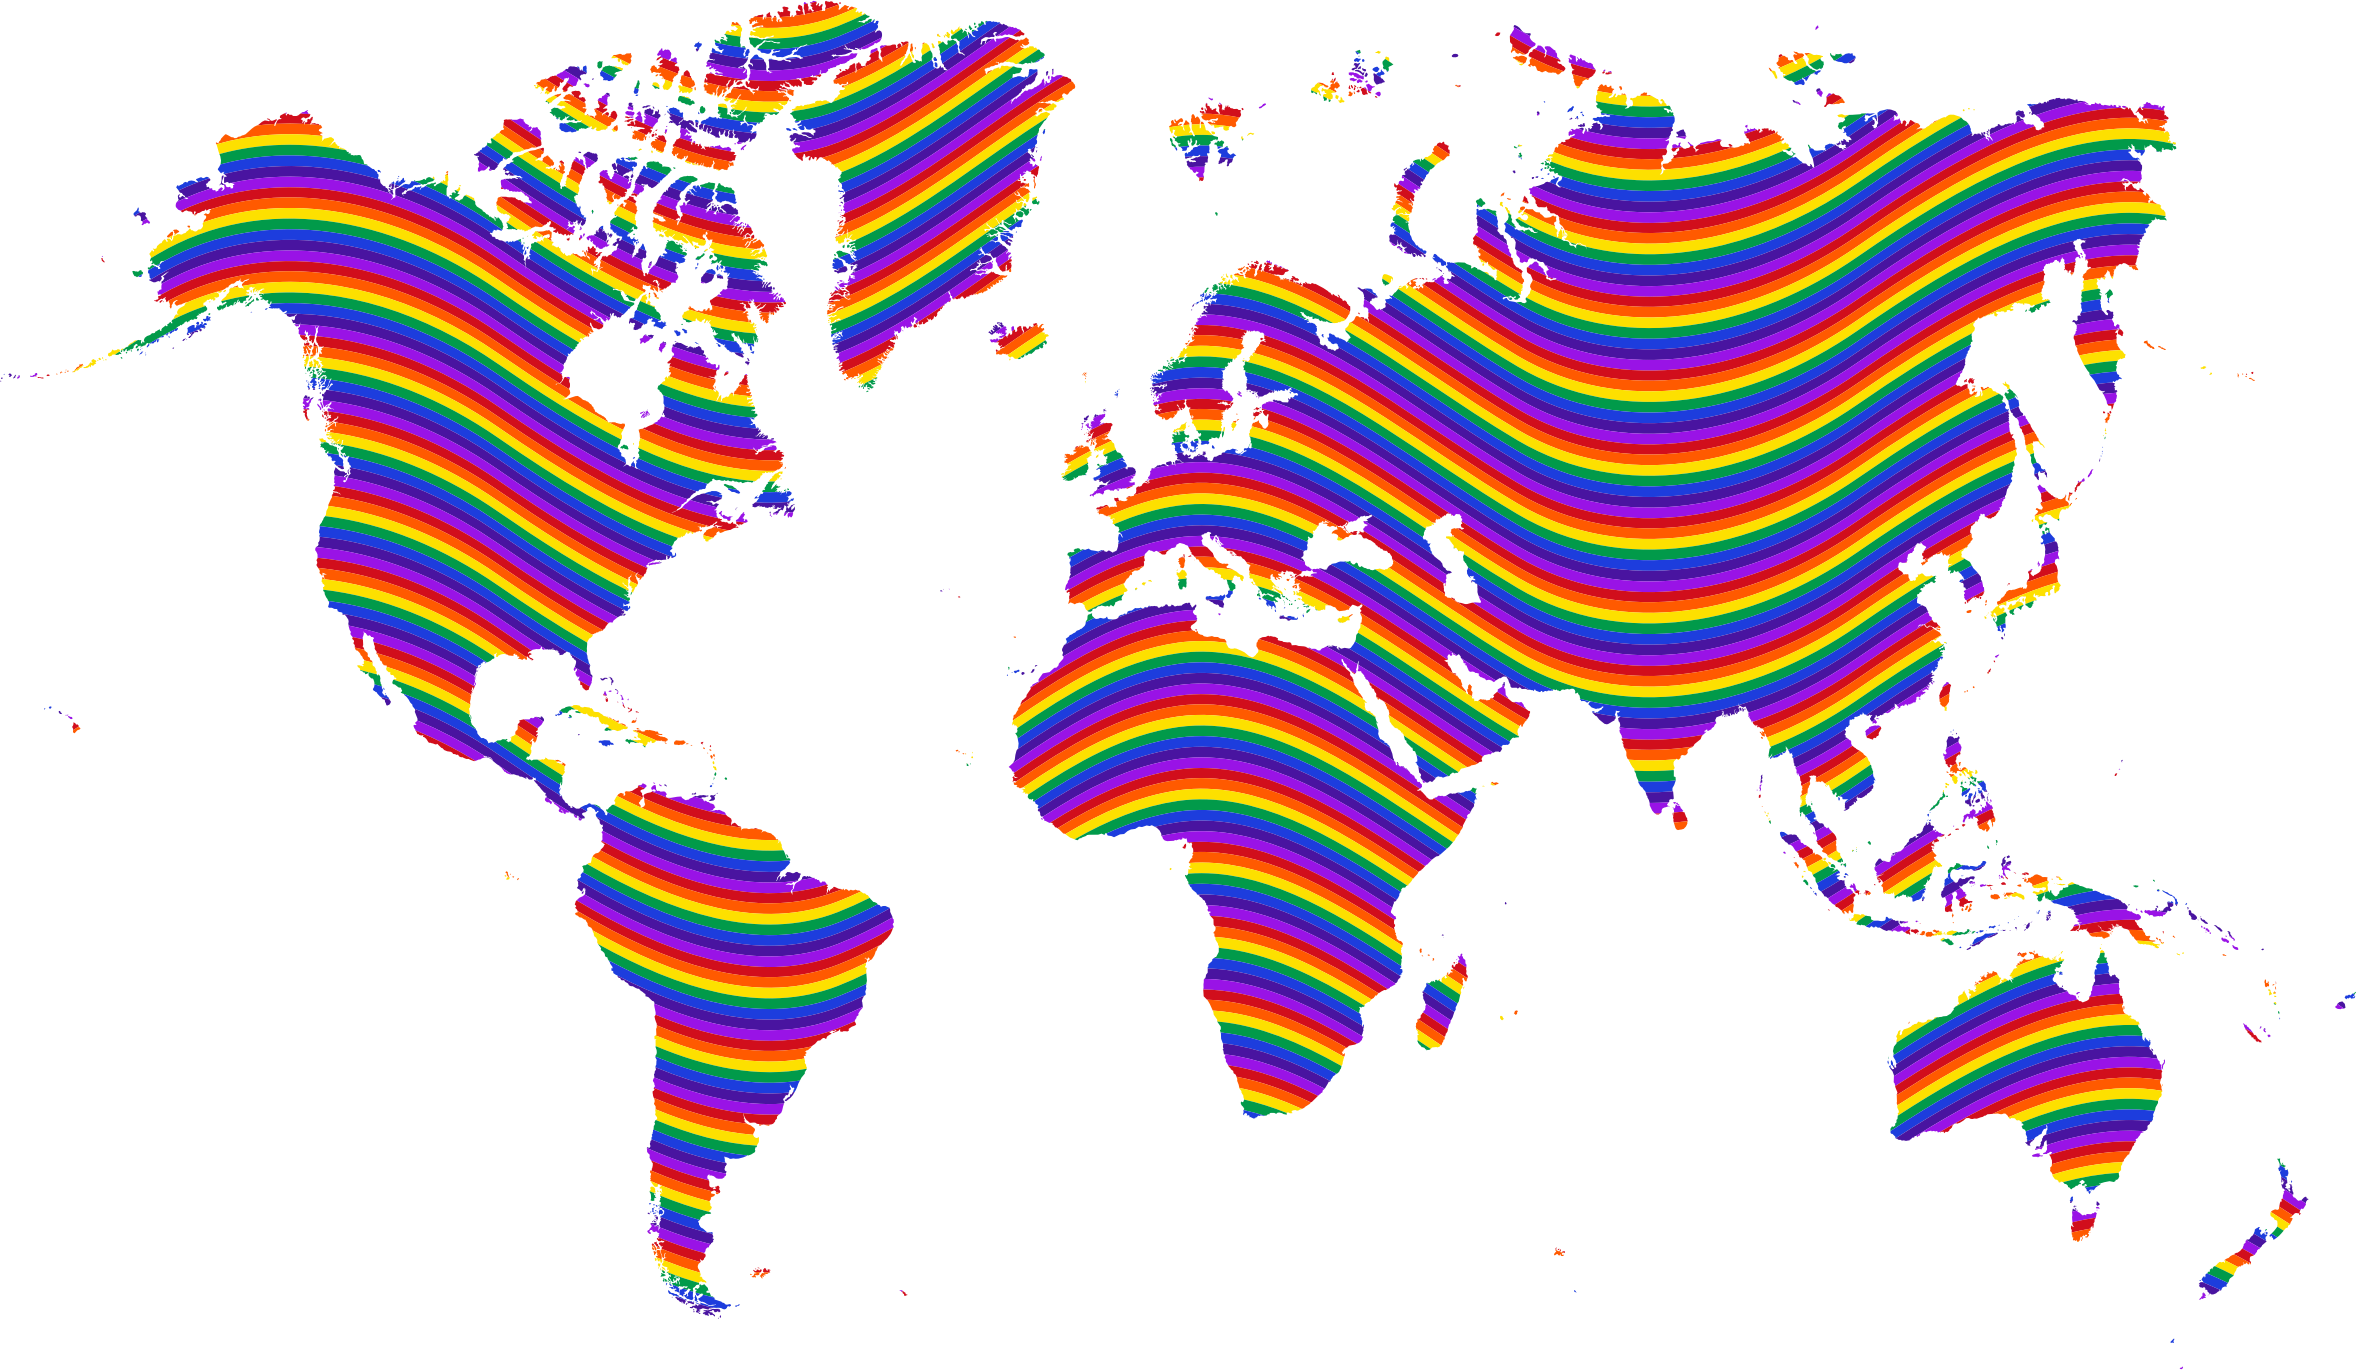 Rainbow Waves World Map by GDJ